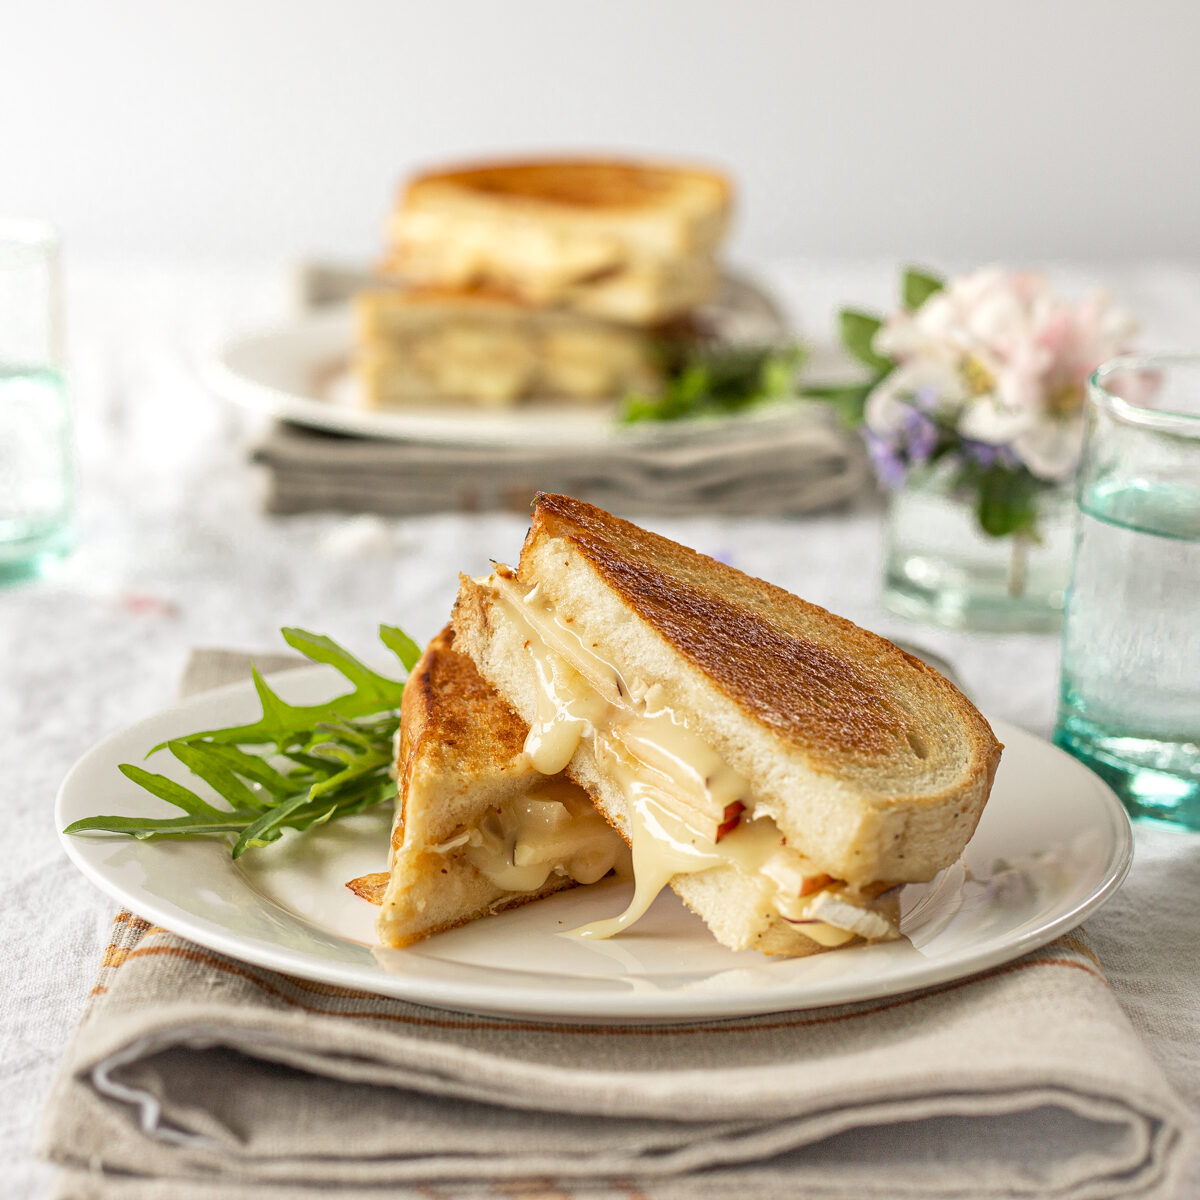 Brie and apple grilled cheese sandwiches are melty and delicious